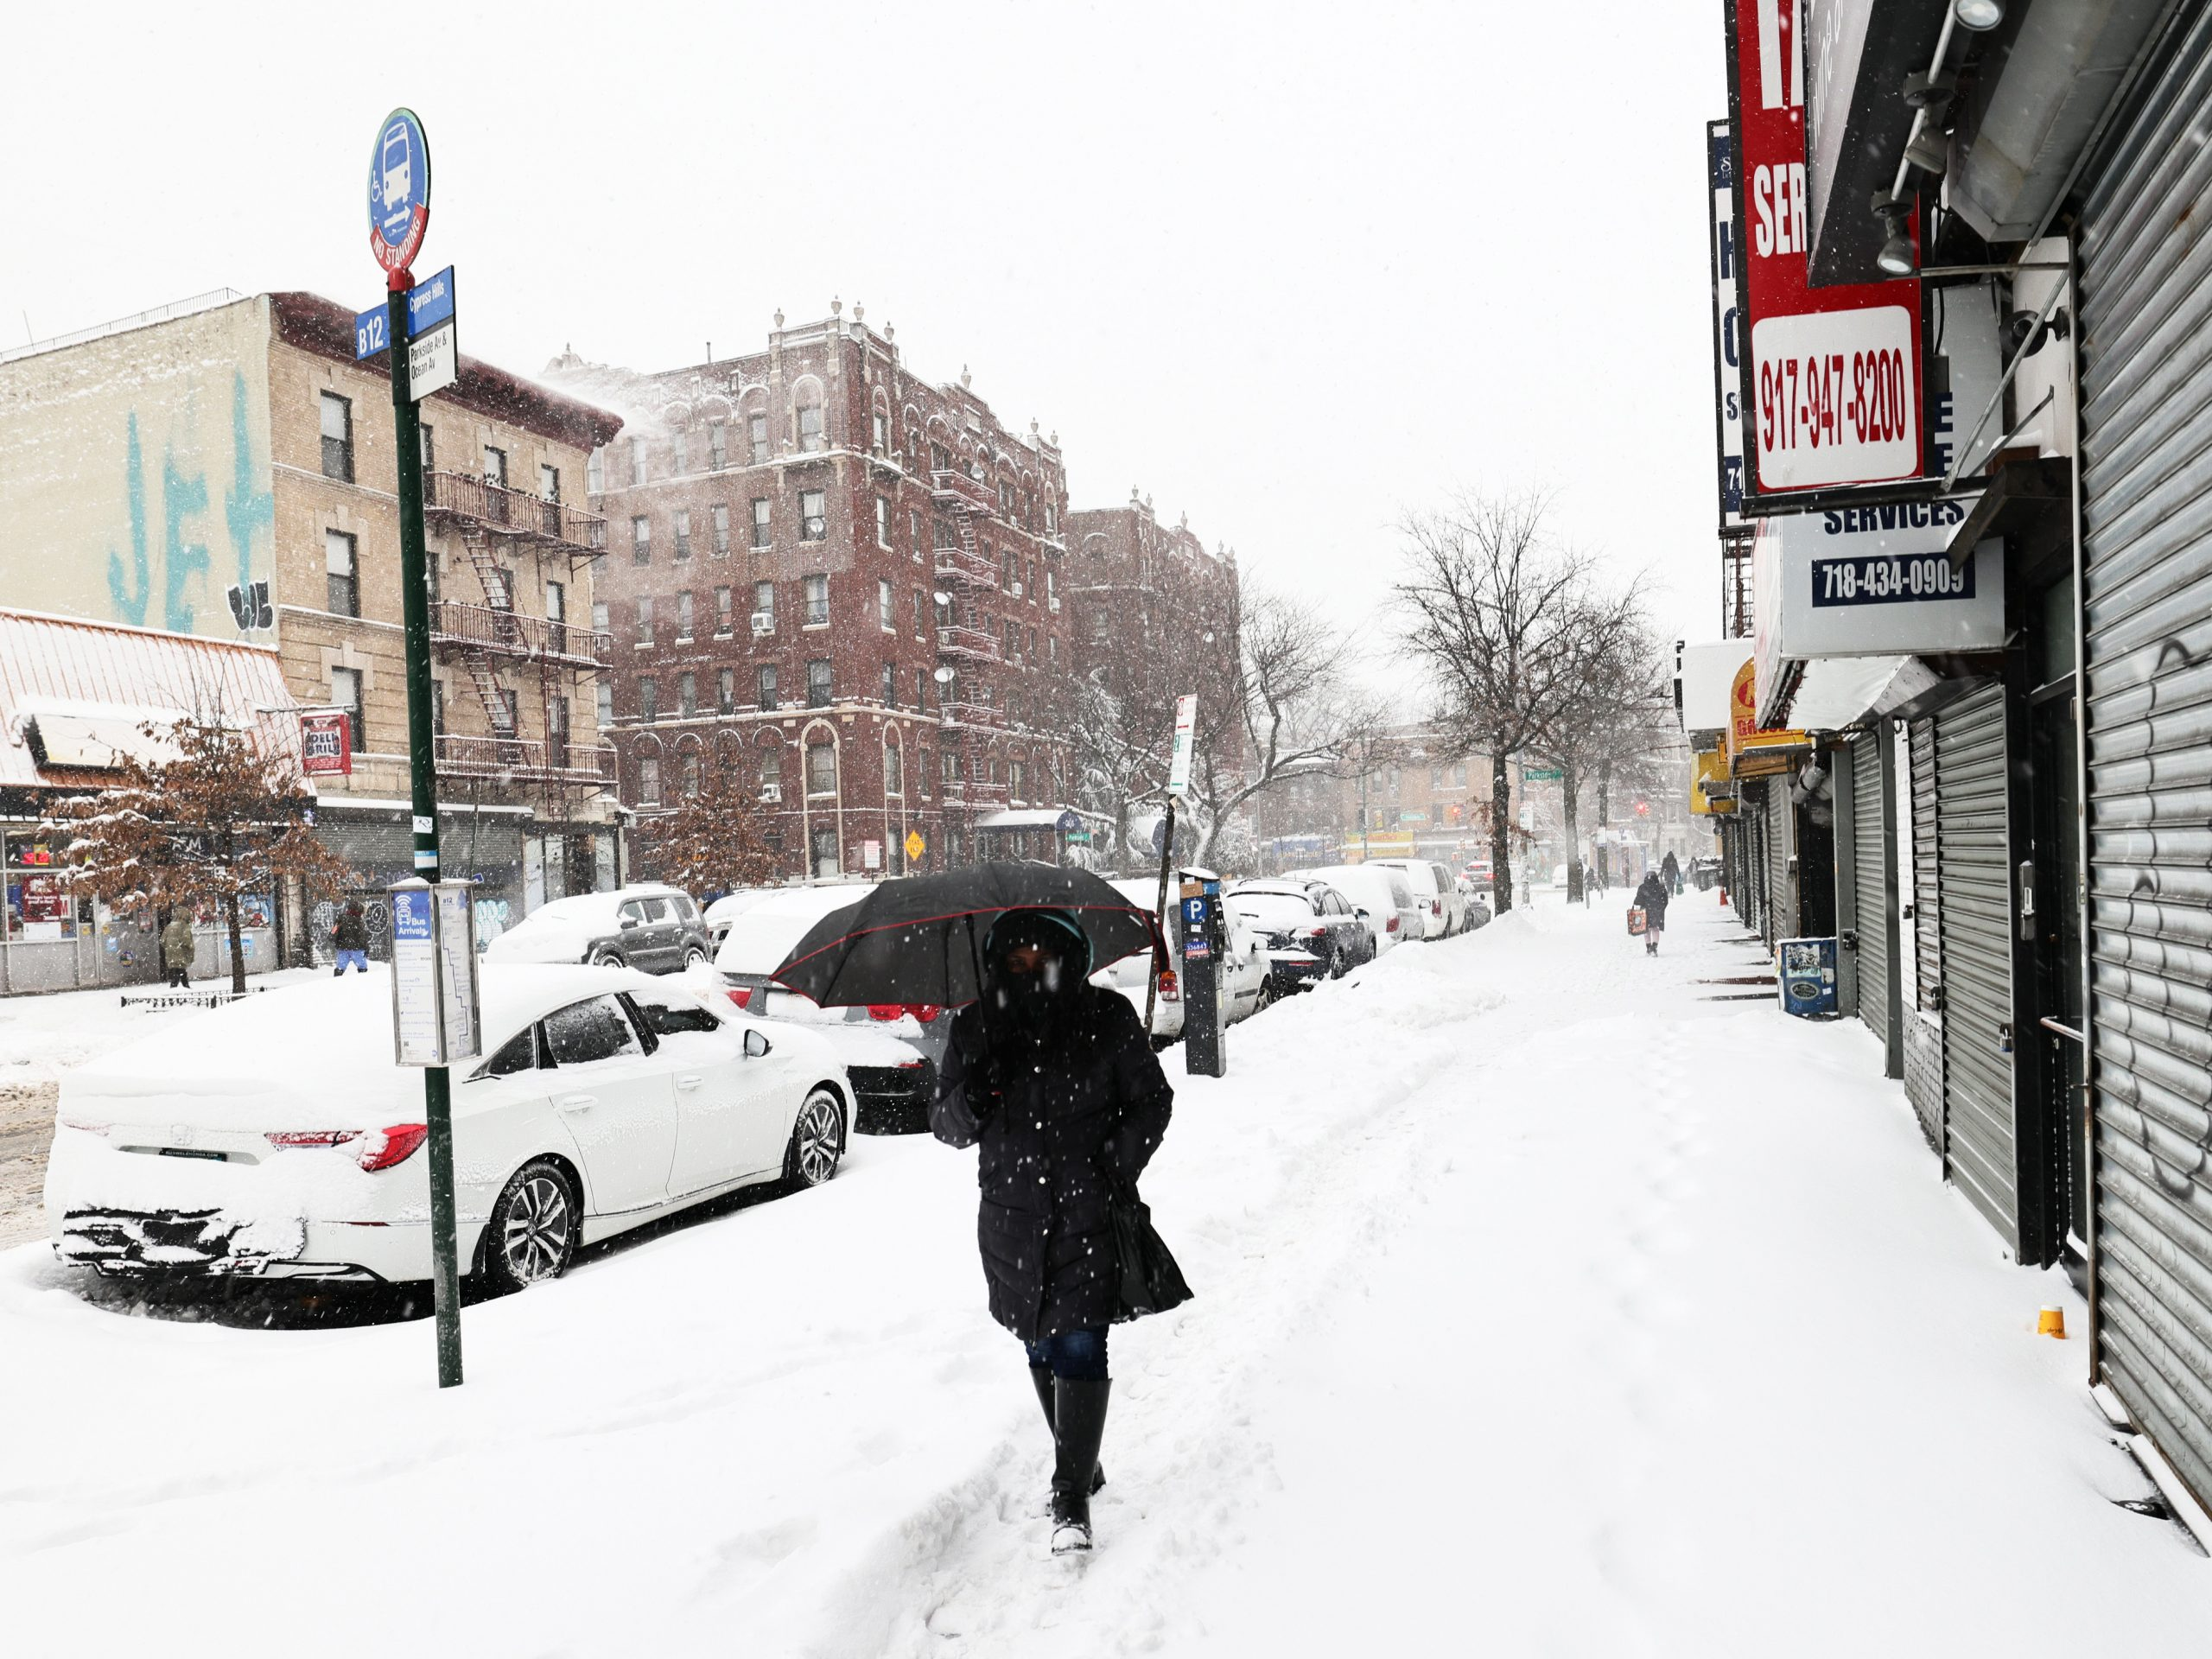 A massive winter storm is bringing heavy snowfall and strong winds to neighborhoods across the Northeast, like this one in Brooklyn, New York.